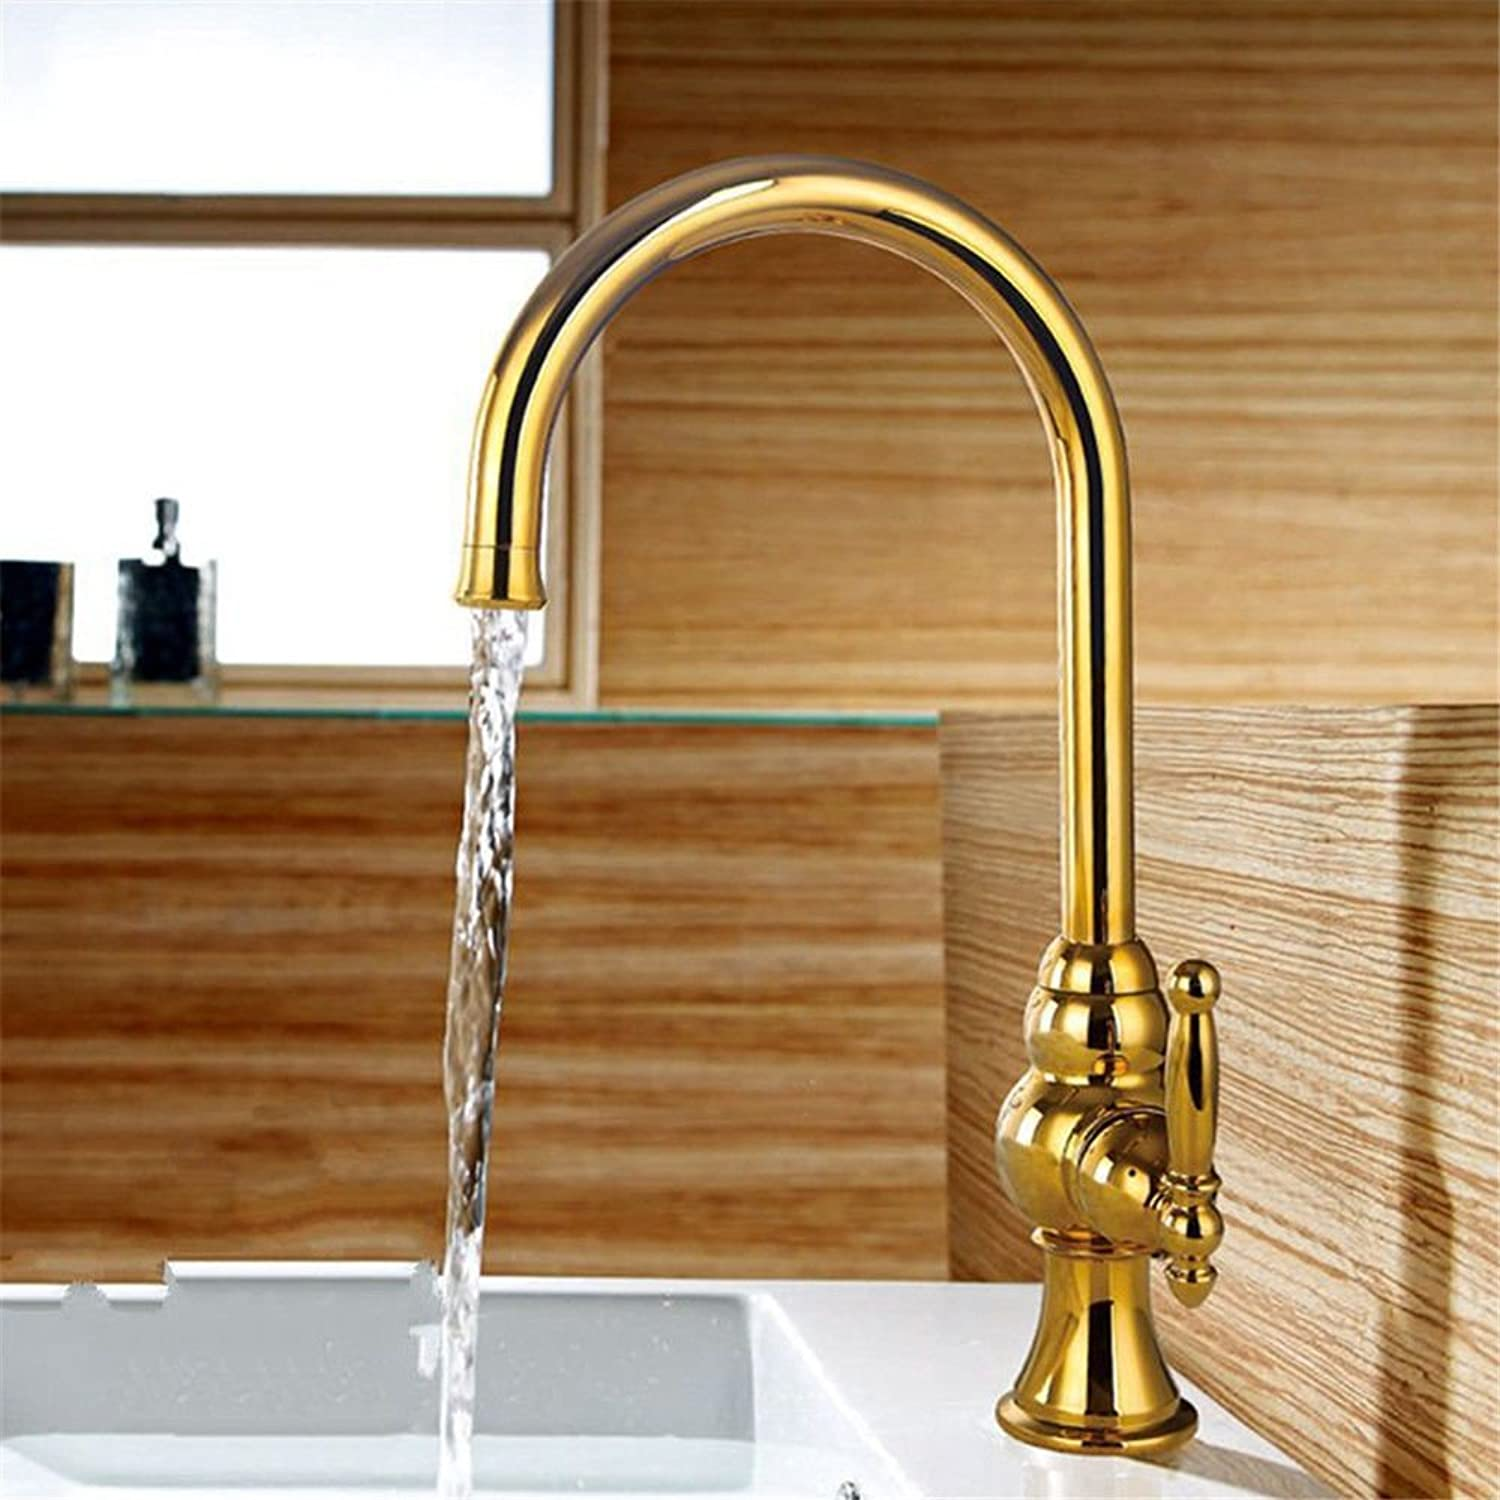 Gyps Faucet Basin Tap Waterfall Faucet Bathroom The gold over copper kitchen faucet lead-free green chrome plated dish washing basin washing basin, hot and cold water single hole swivel faucet B